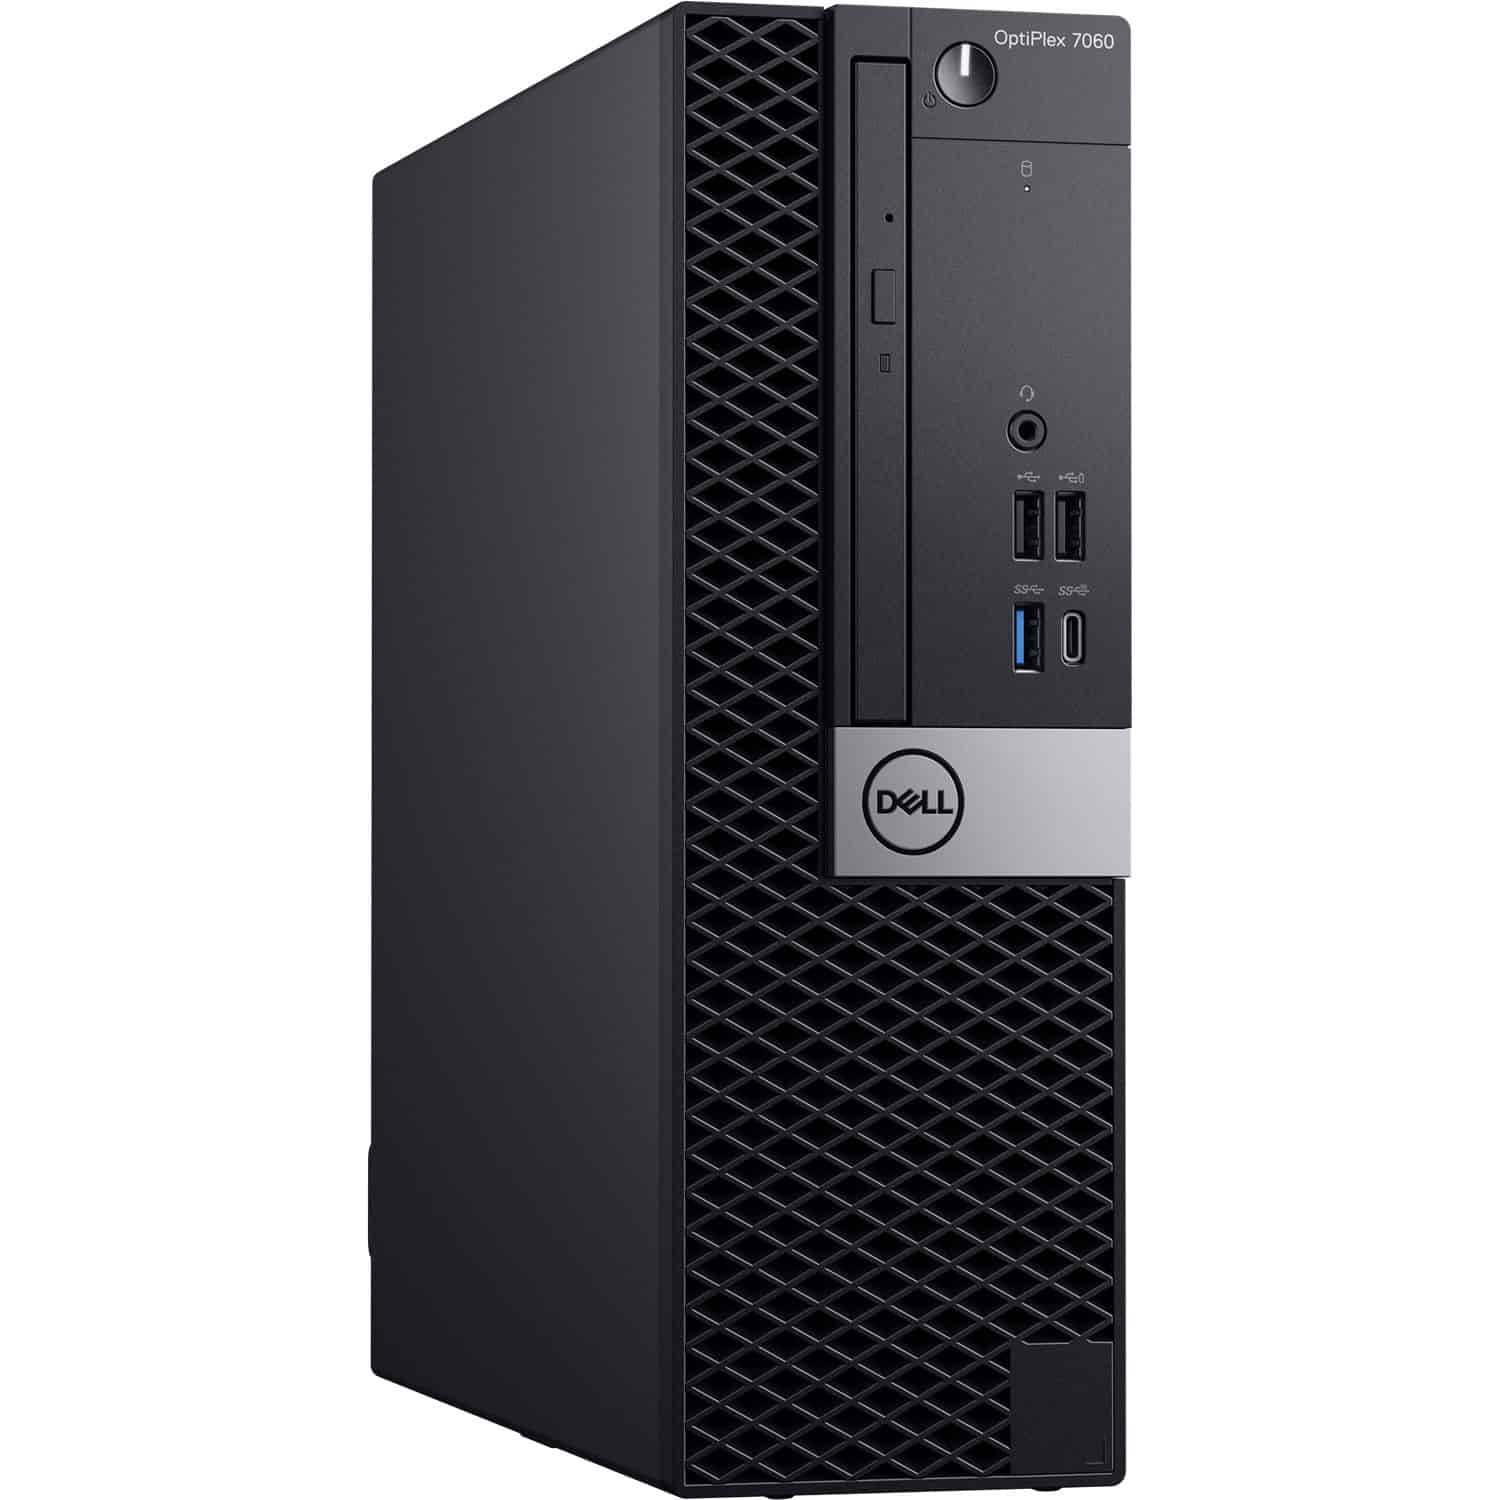 Dell OptiPlex 7060 I5 (8TH GEN) SFF (250GB SSD Upgrade)